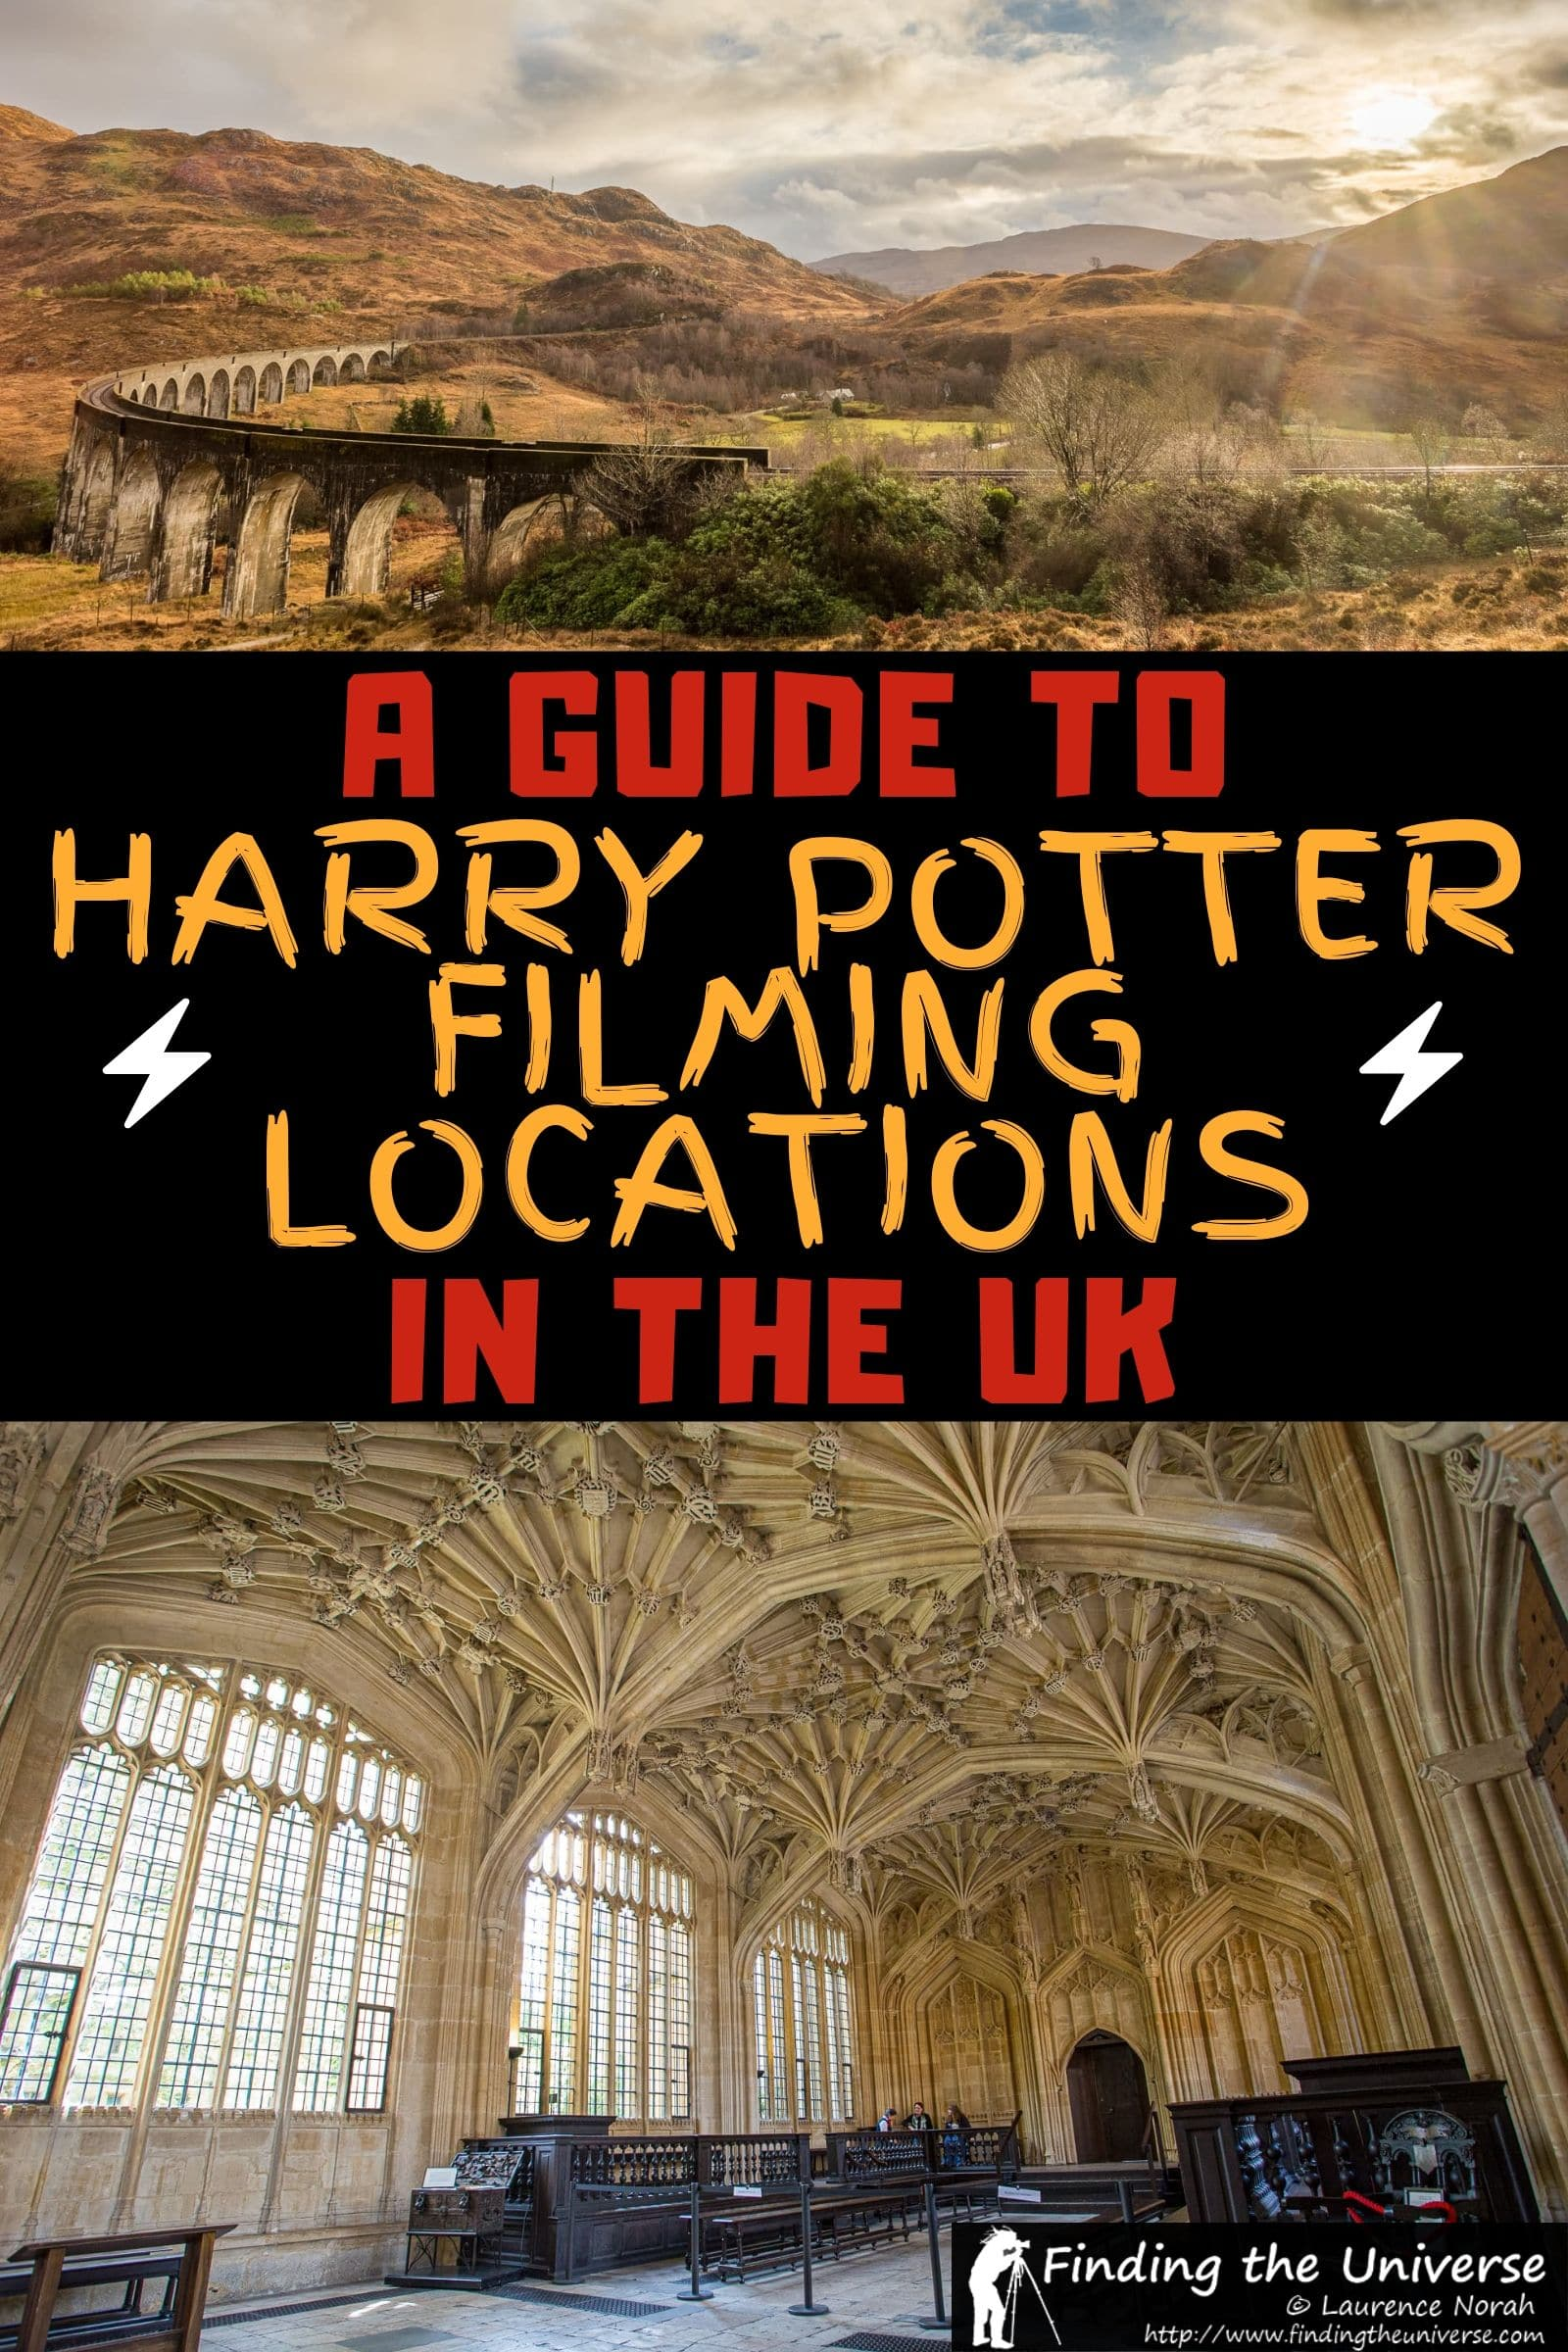 A detailed guide to the top Harry Potter filming locations in the UK, including locations for Hogwarts, Diagon Alley, Platform 9 3/4 and more!